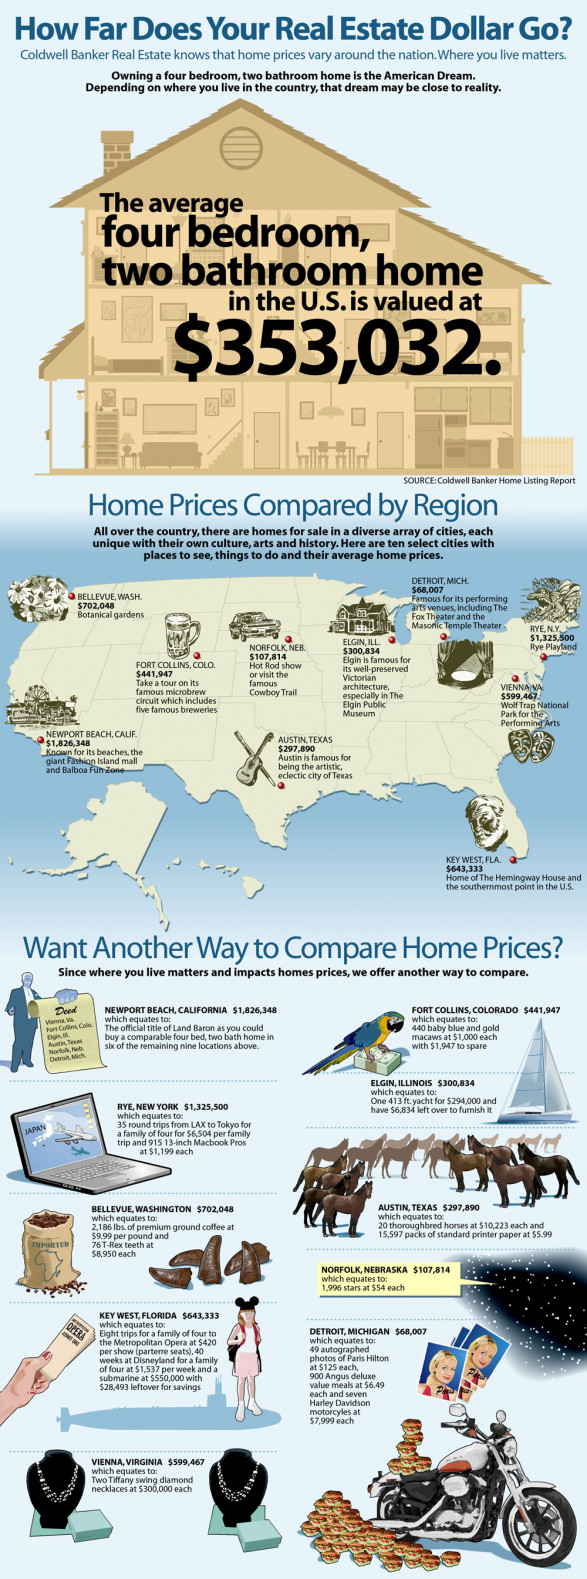 Home Prices in the US